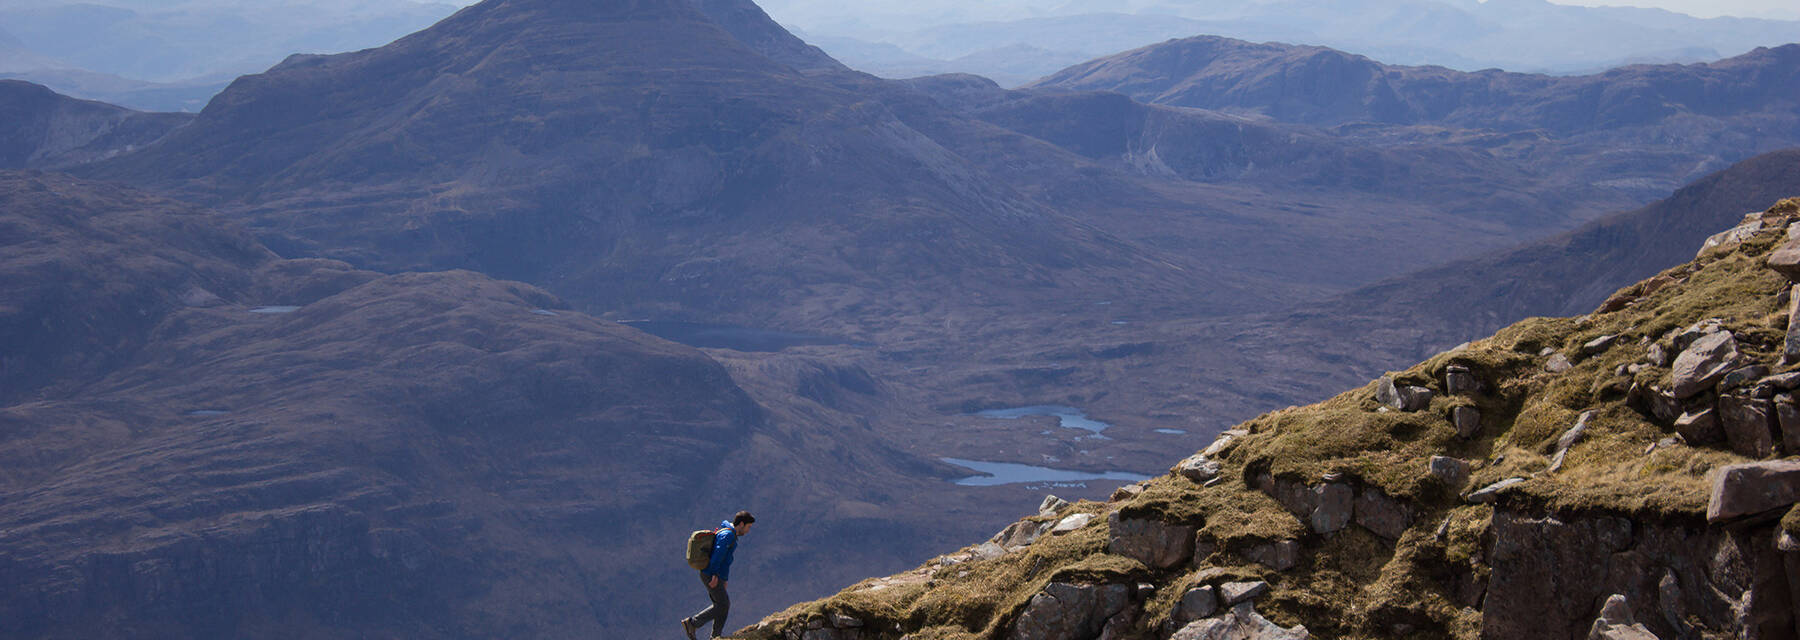 A young man hiking a knife-edged mountain ridge on the Liathach Ridge